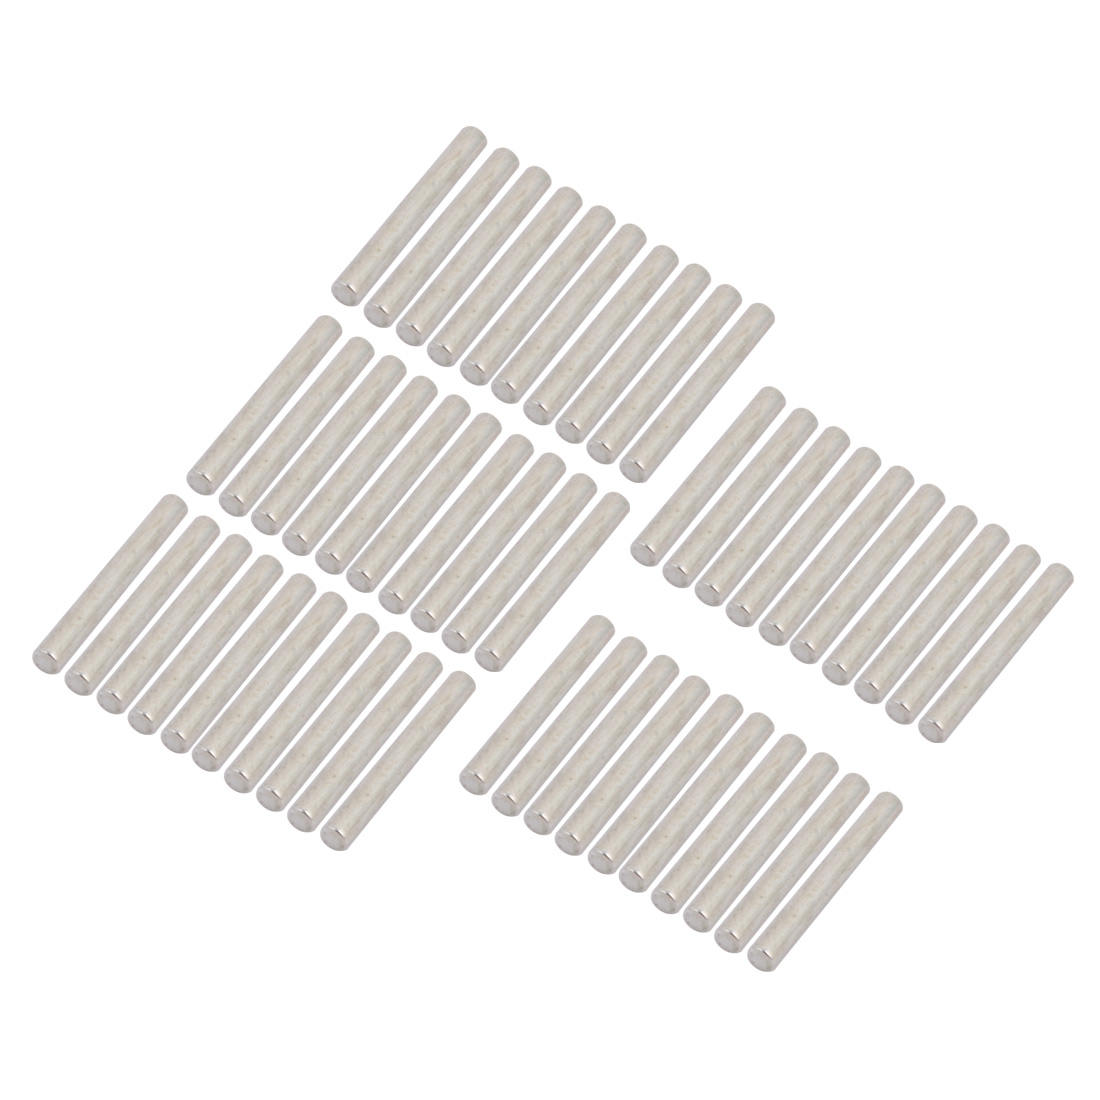 50Pcs Round Shaft Solid Steel Rods Axles 3mm x 25mm Silver Tone